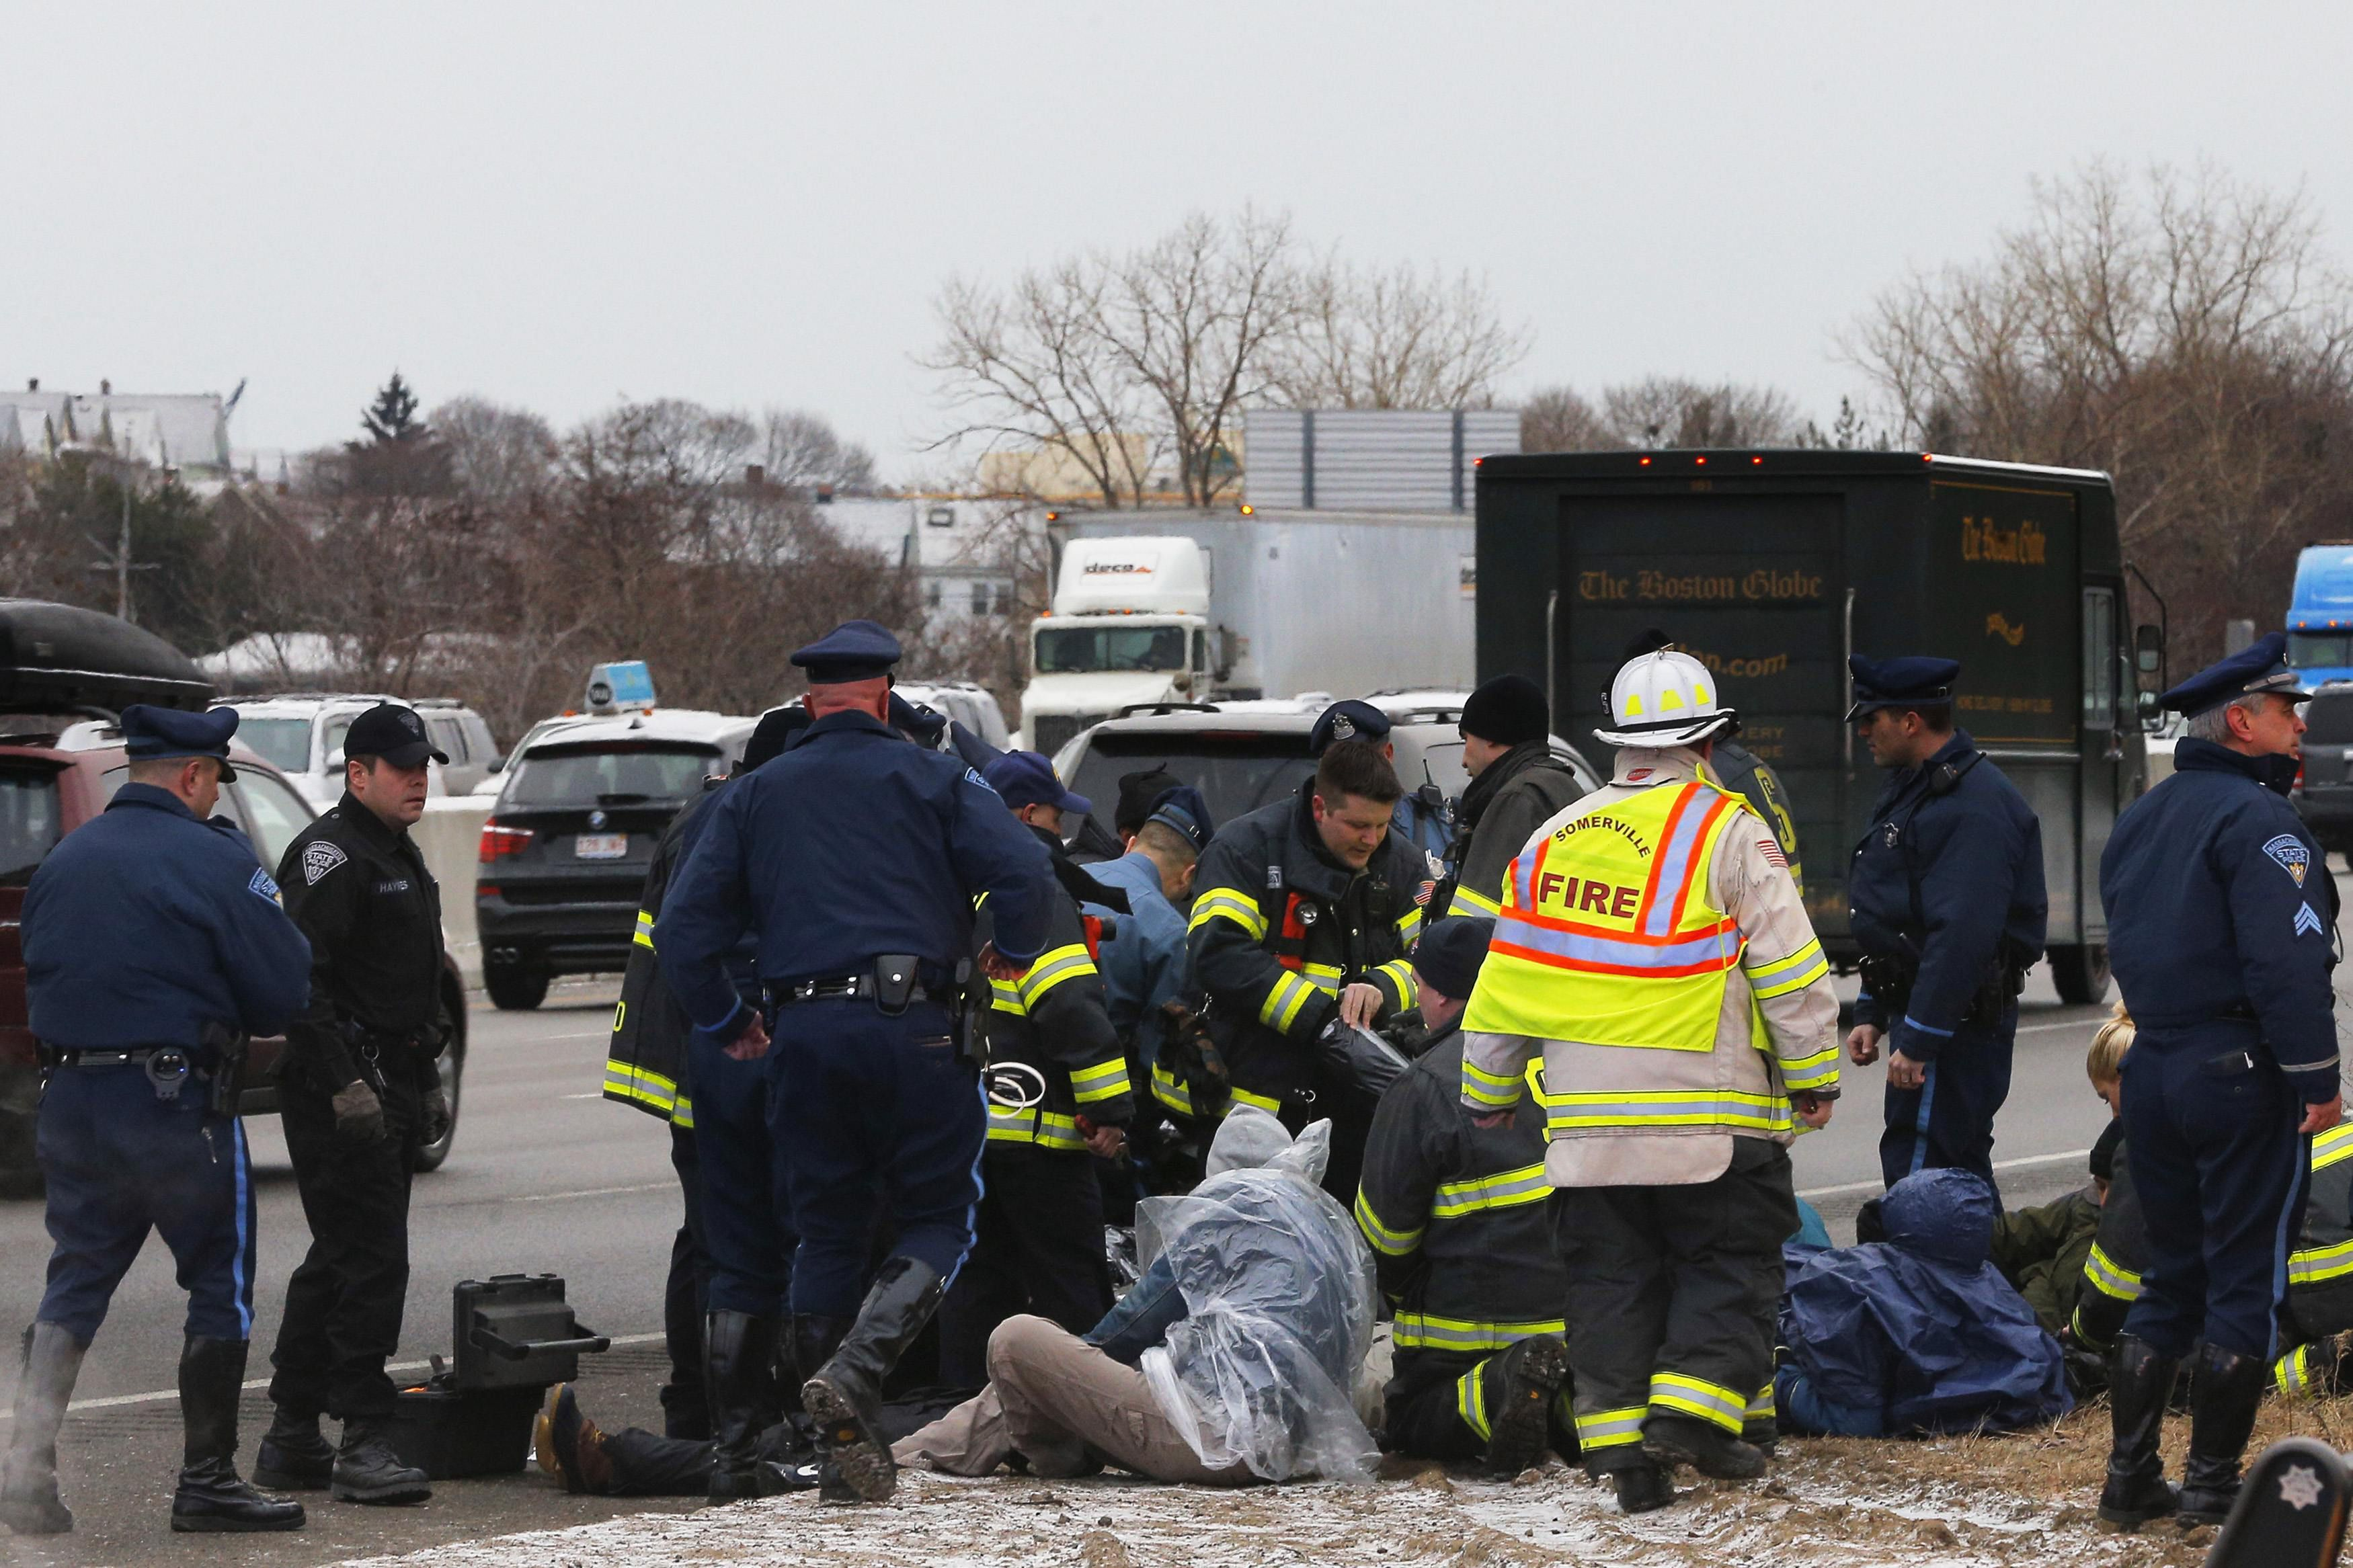 Two protesters charged with blocking I-93 plead guilty - The Boston